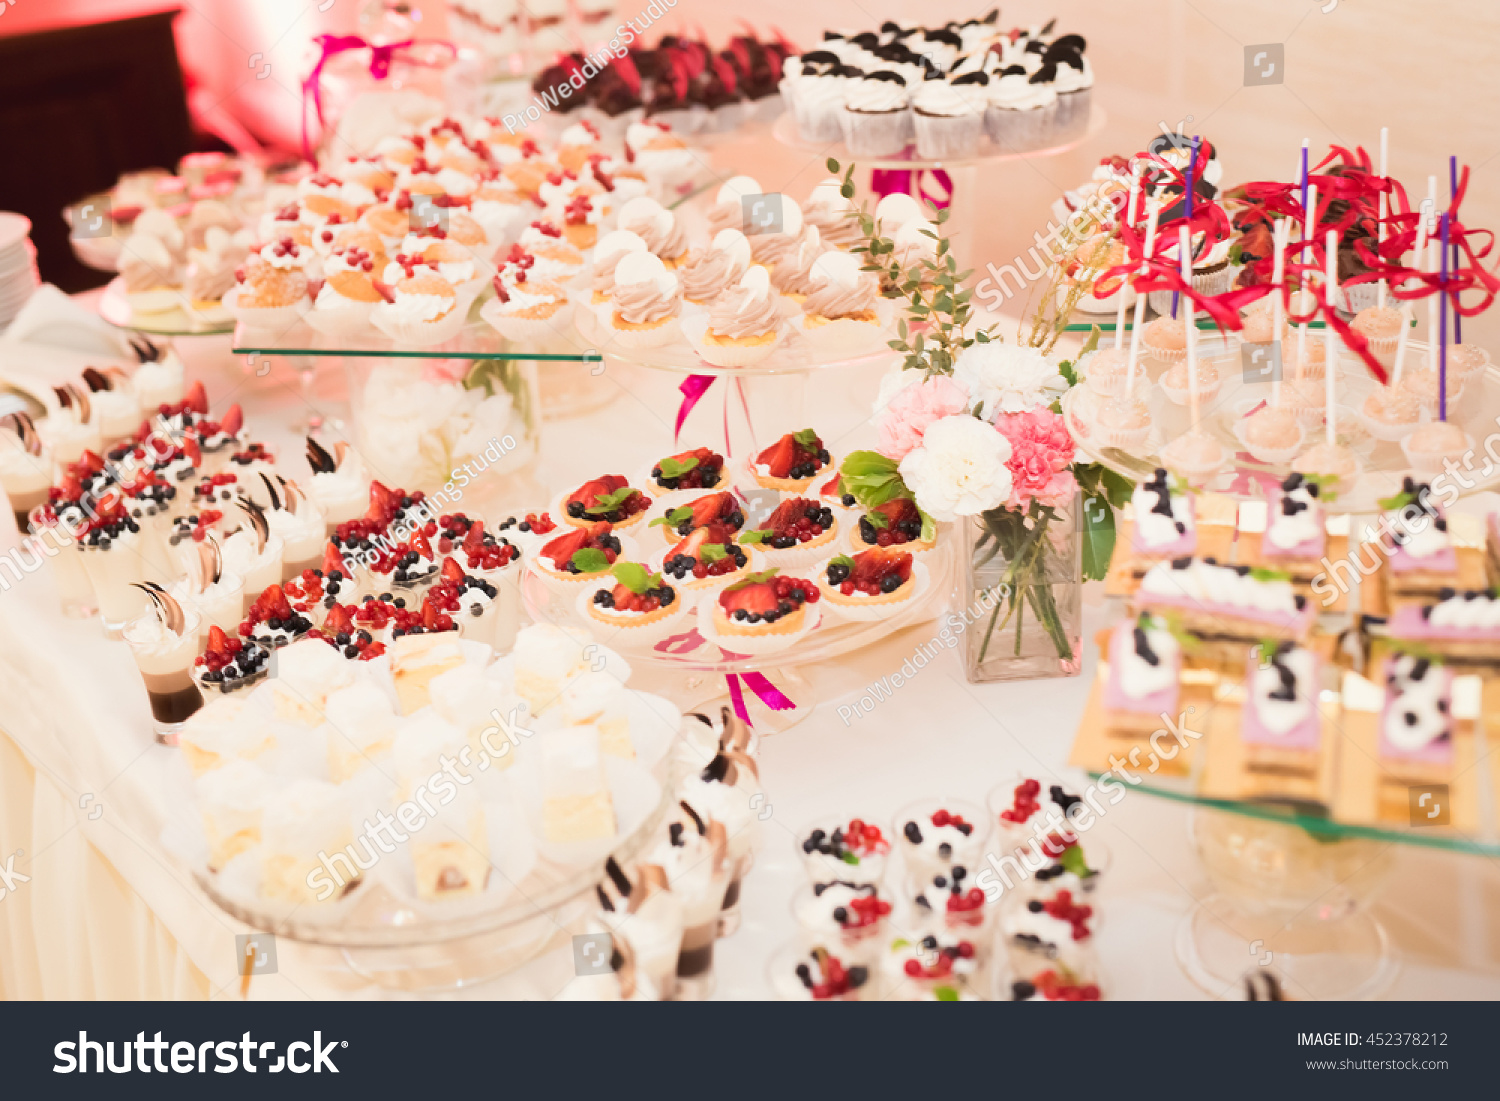 Delicious Wedding Reception Candy Bar Dessert Stock Photo Edit Now